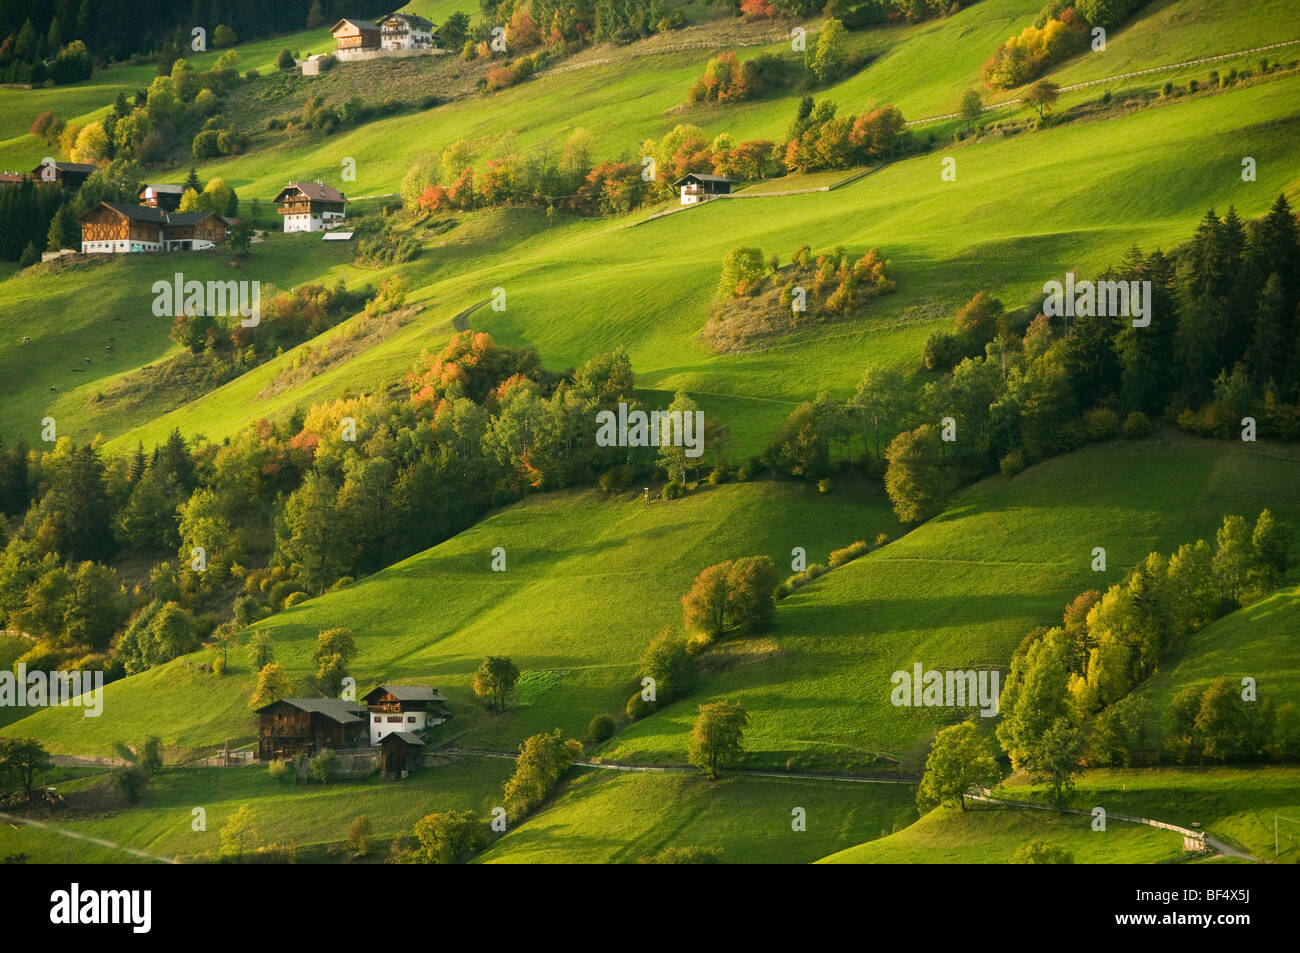 Houses and farms, Val di Funes, Dolomites, Trentino-Alto Adige